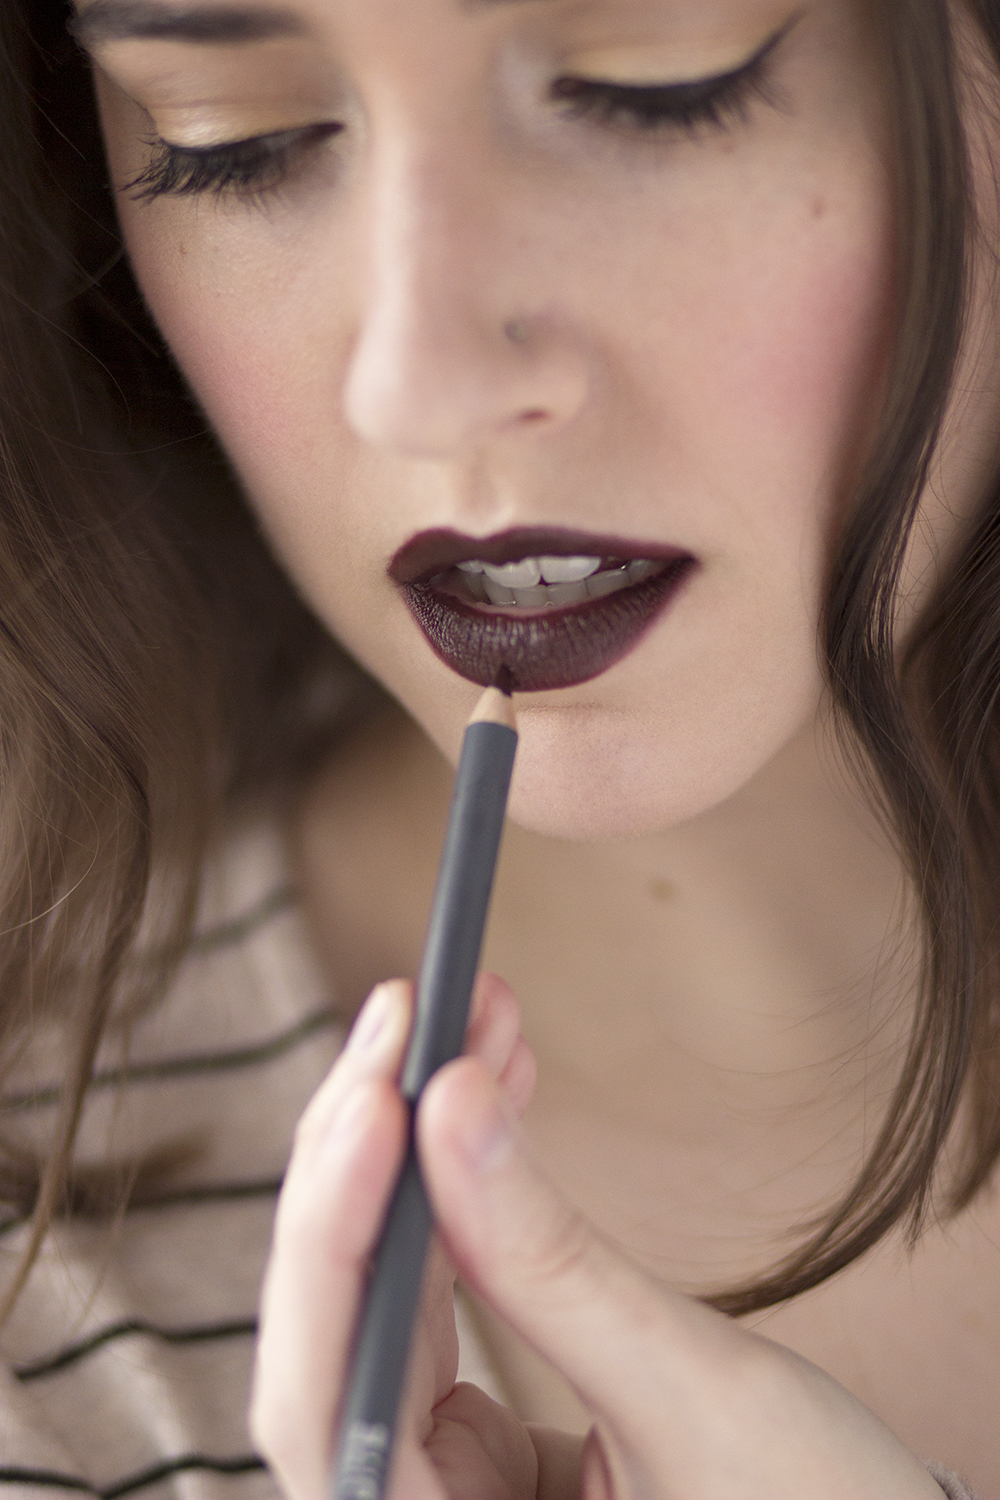 The Lip Pencil by BITE Beauty in 044 and Whiskey lipstick x Influenster - The Lip Pencil by BITE Beauty review